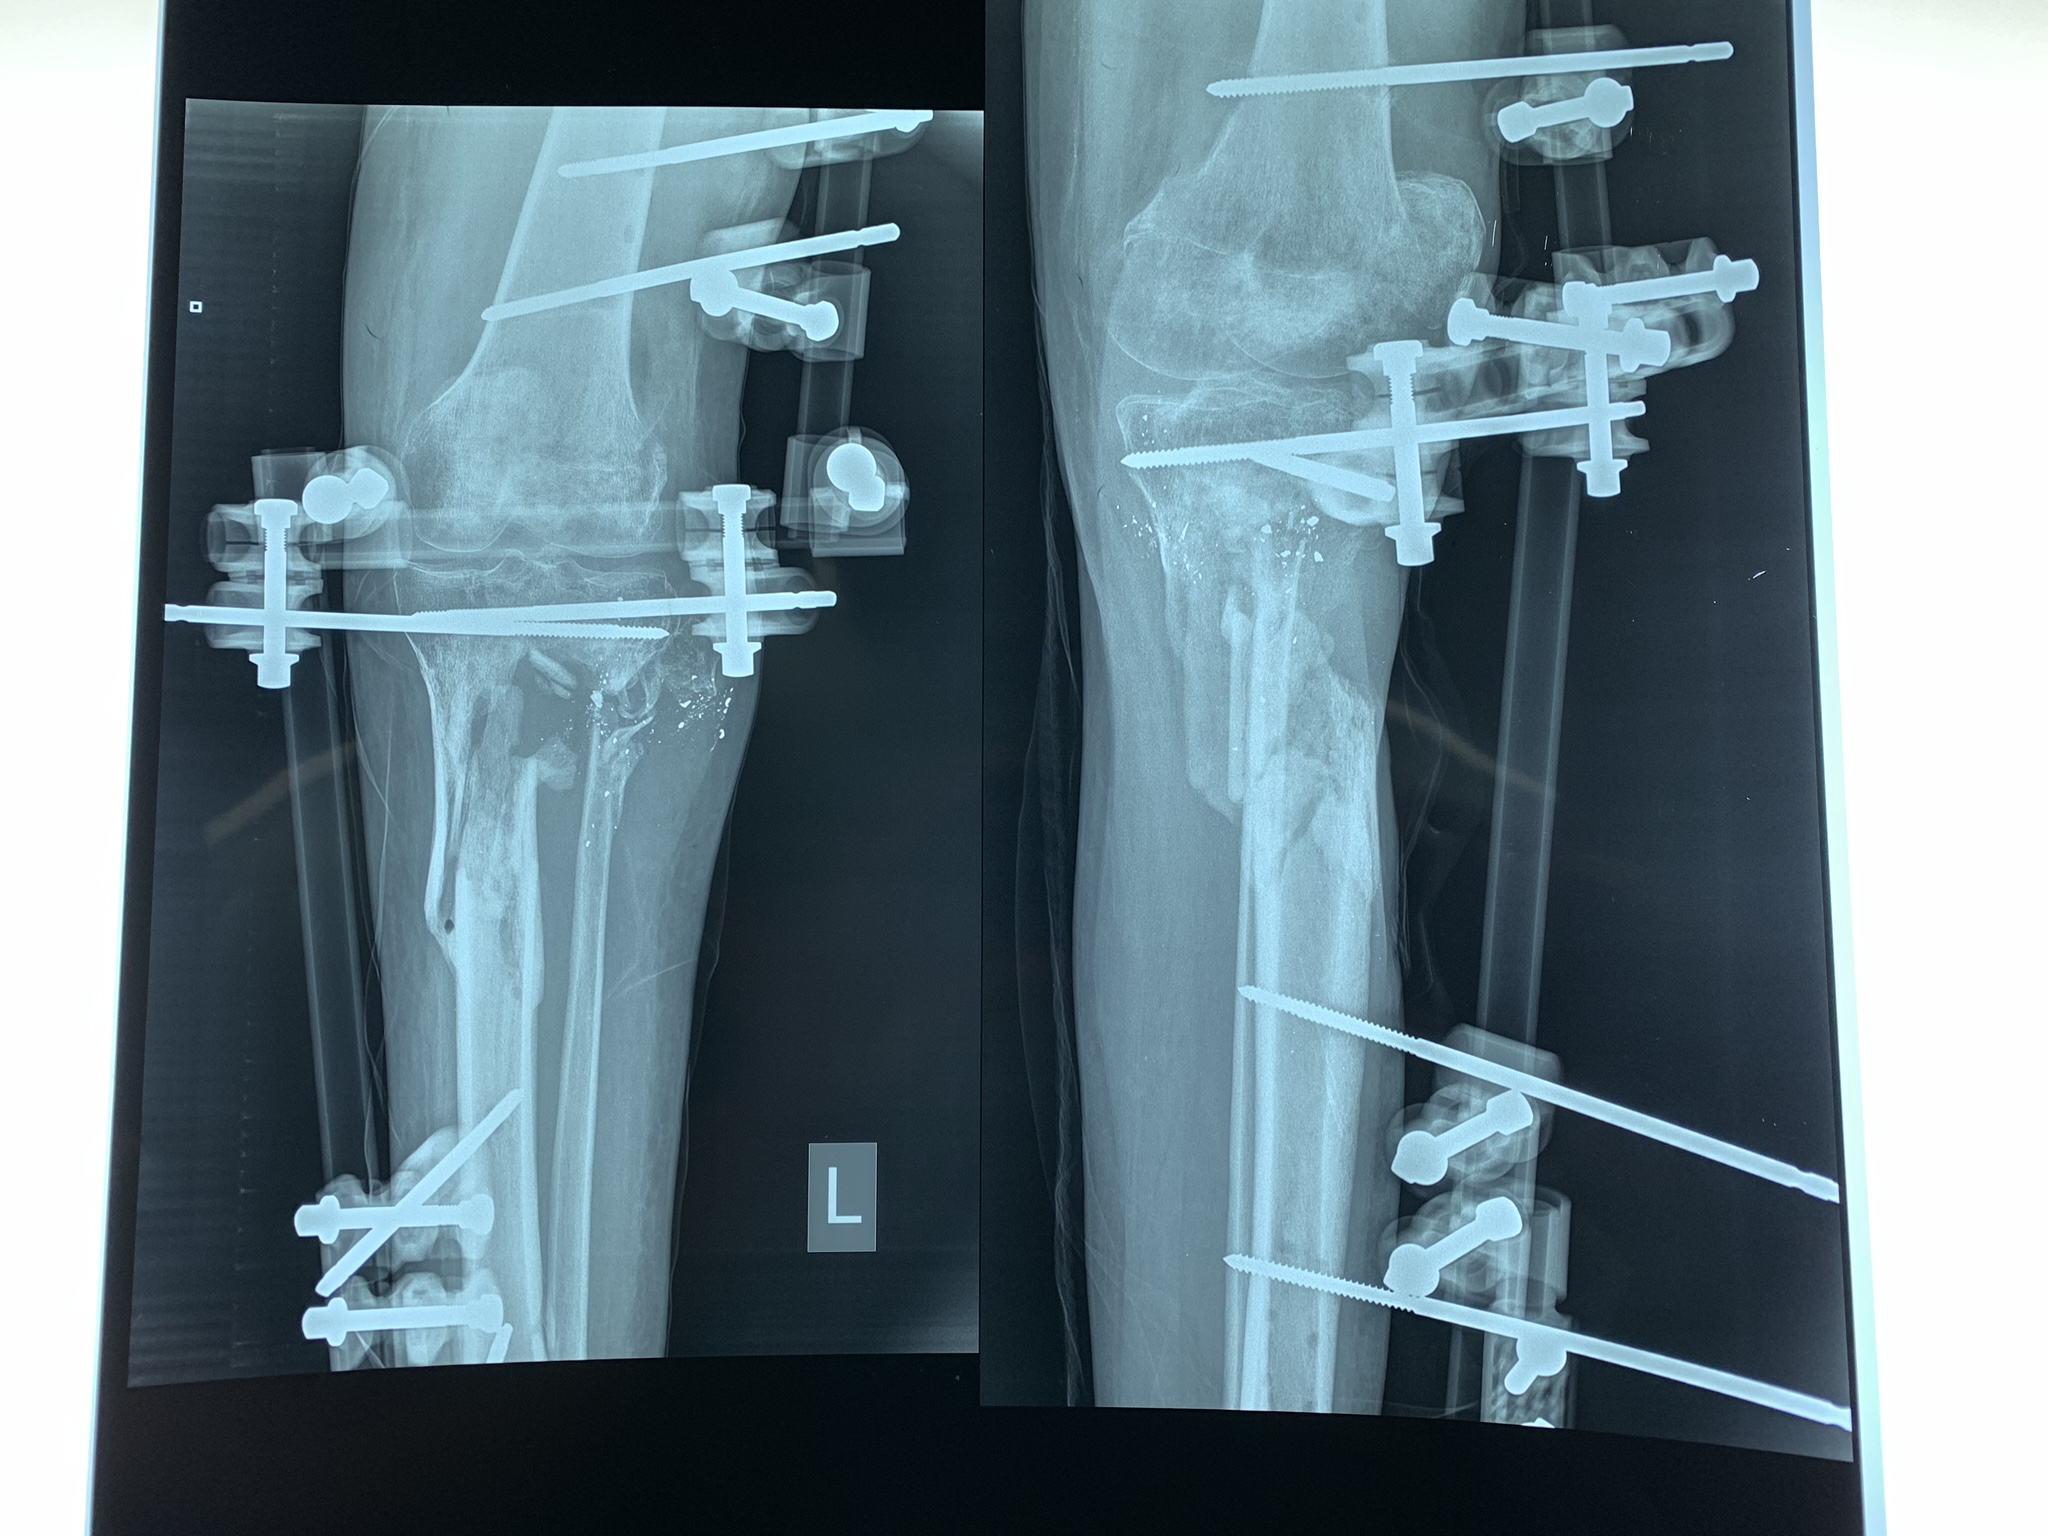 An x-ray shows the bone gap and external fixators in the leg of Yousri*, who was shot by the Israeli army during protests in Gaza in July 2018. Al-Awda Hospital